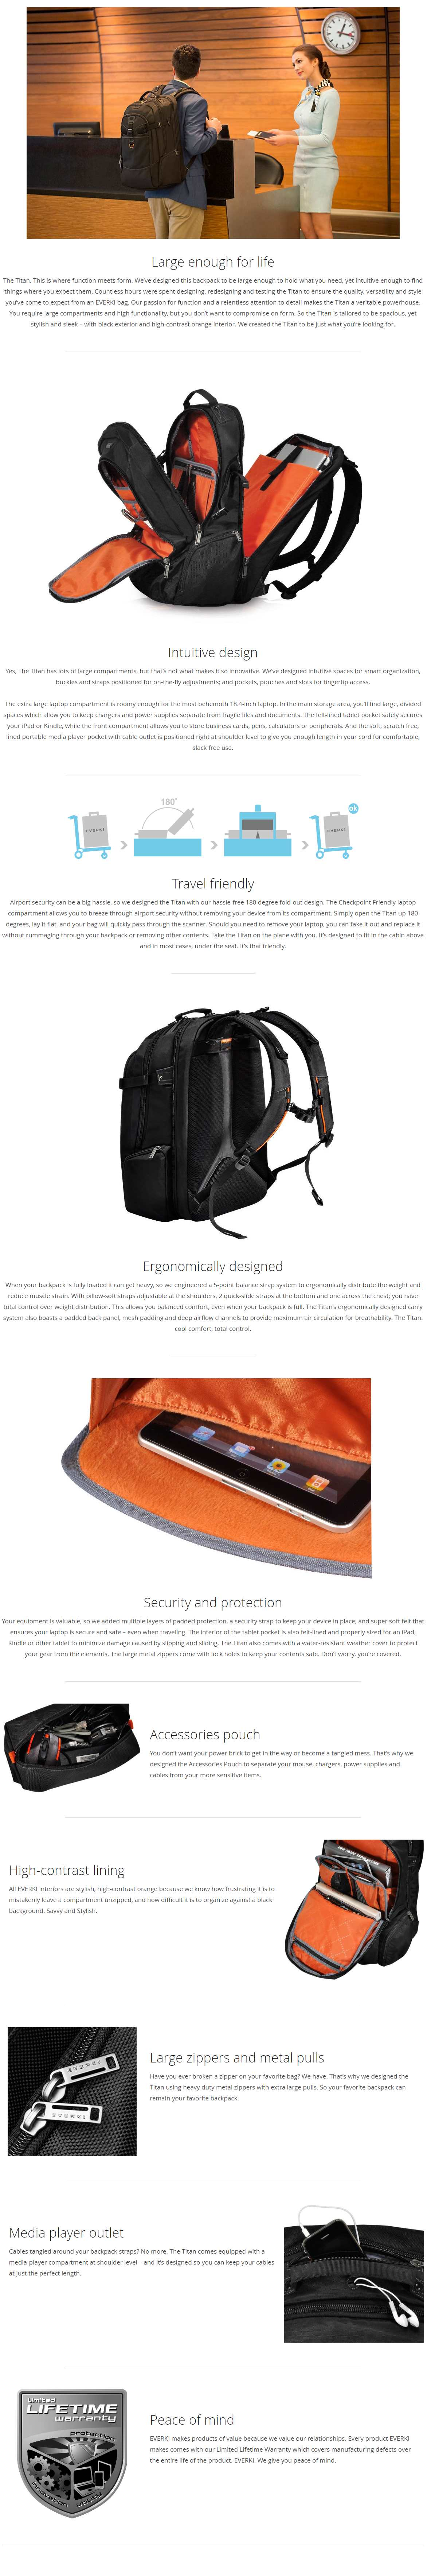 """A large marketing image providing additional information about the product Everki 18.4"""" Titan Backpack - Additional alt info not provided"""